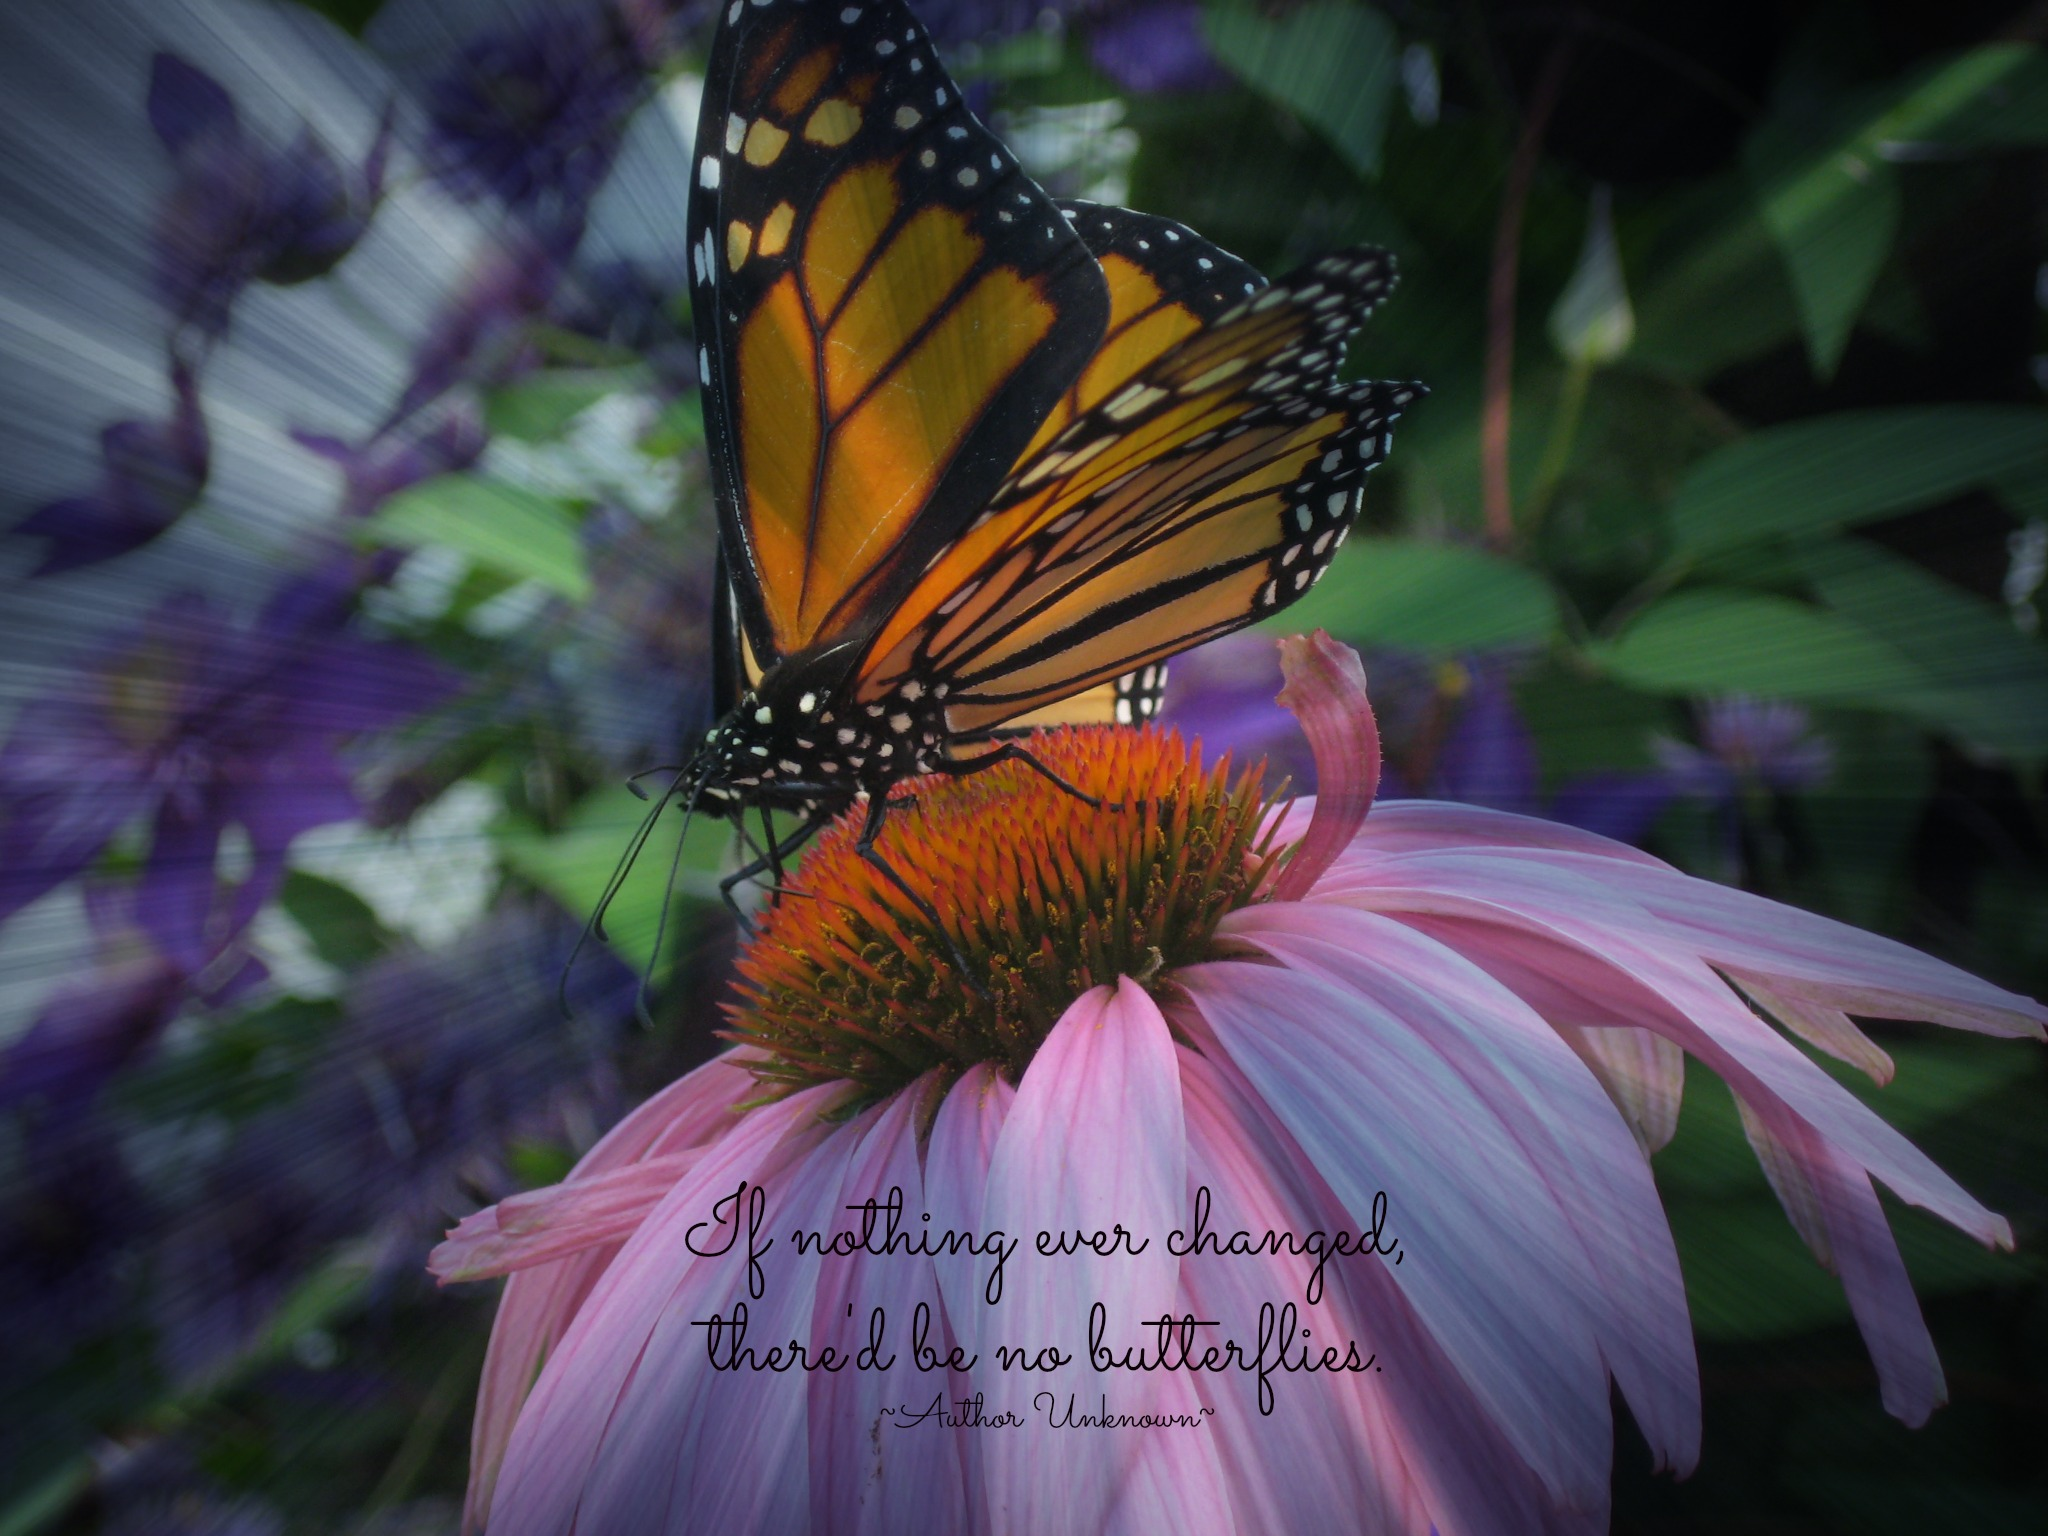 0a5118e1a Butterfly Poems and sayings - an assortment of poems about butterflies